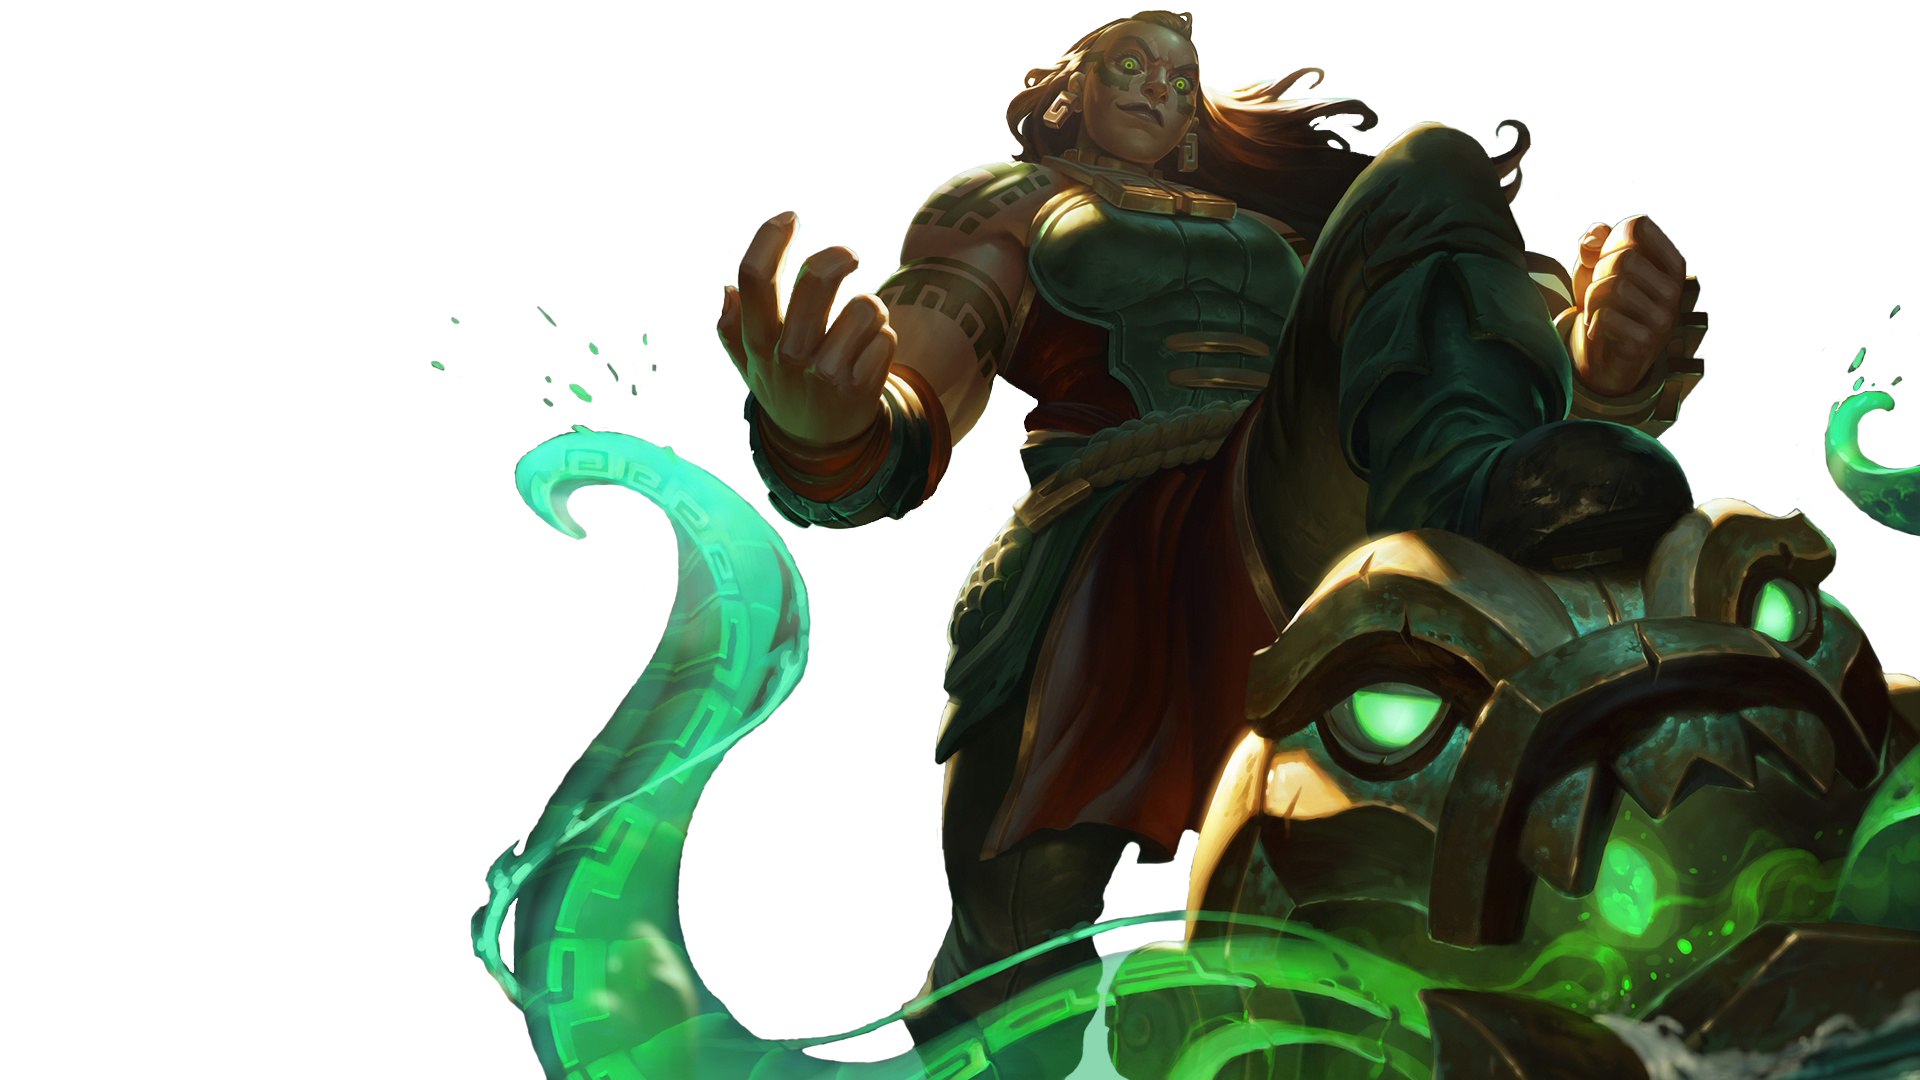 7 illaoi league of legends hd wallpapers background images